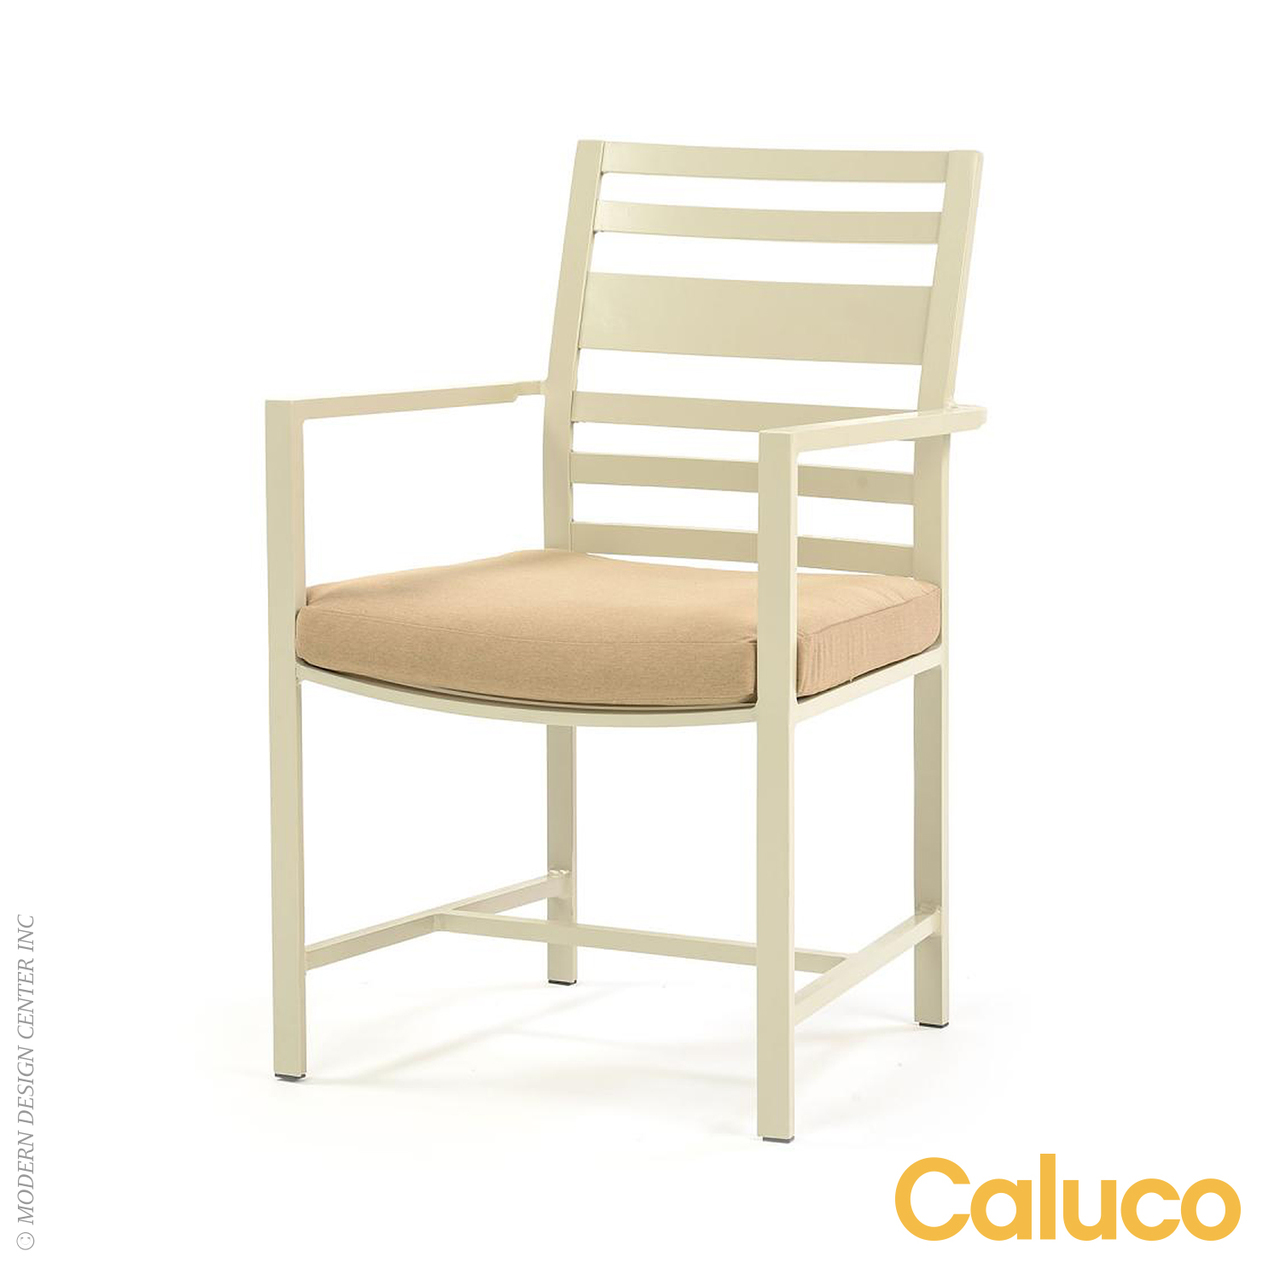 Space Arm Chair | Caluco Patio Furniture